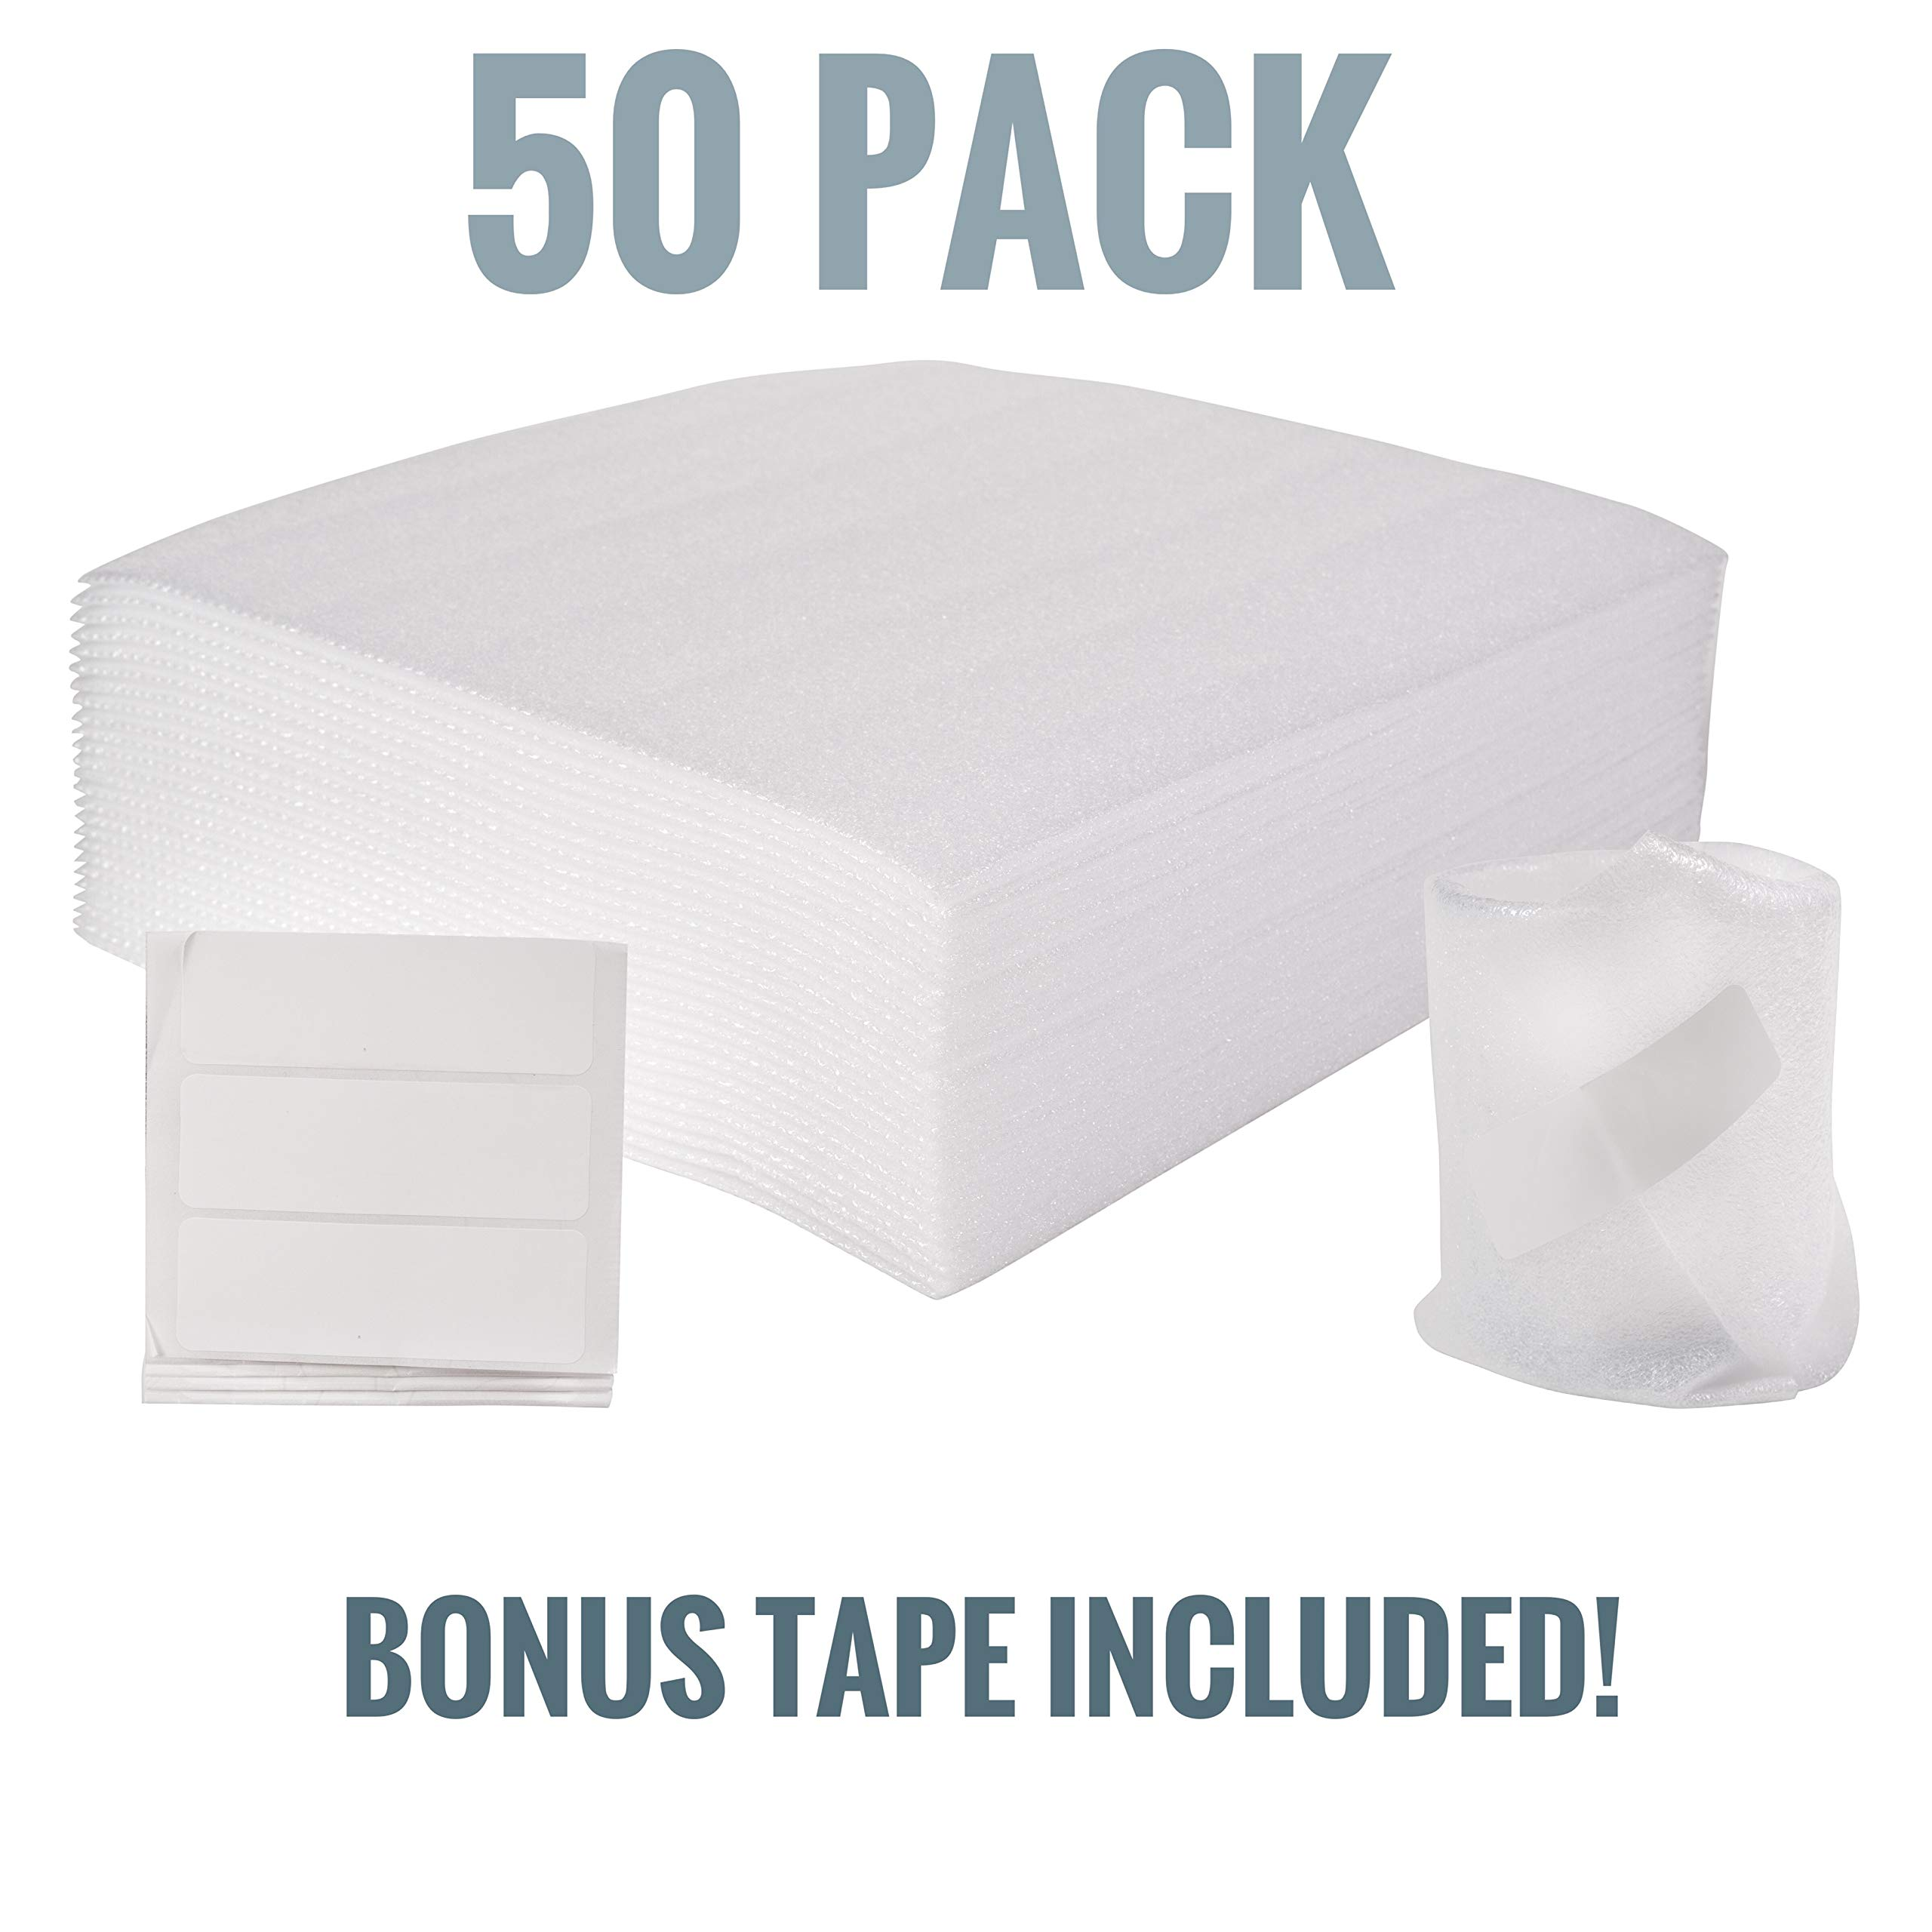 Stella Waves Foam Wrap Sheets 12 x 12 Cushions for Moving, Packing, Storage and Safely Wrapping Dishes, China and Furniture 50-Pack. Bonus Adhesive Tape!